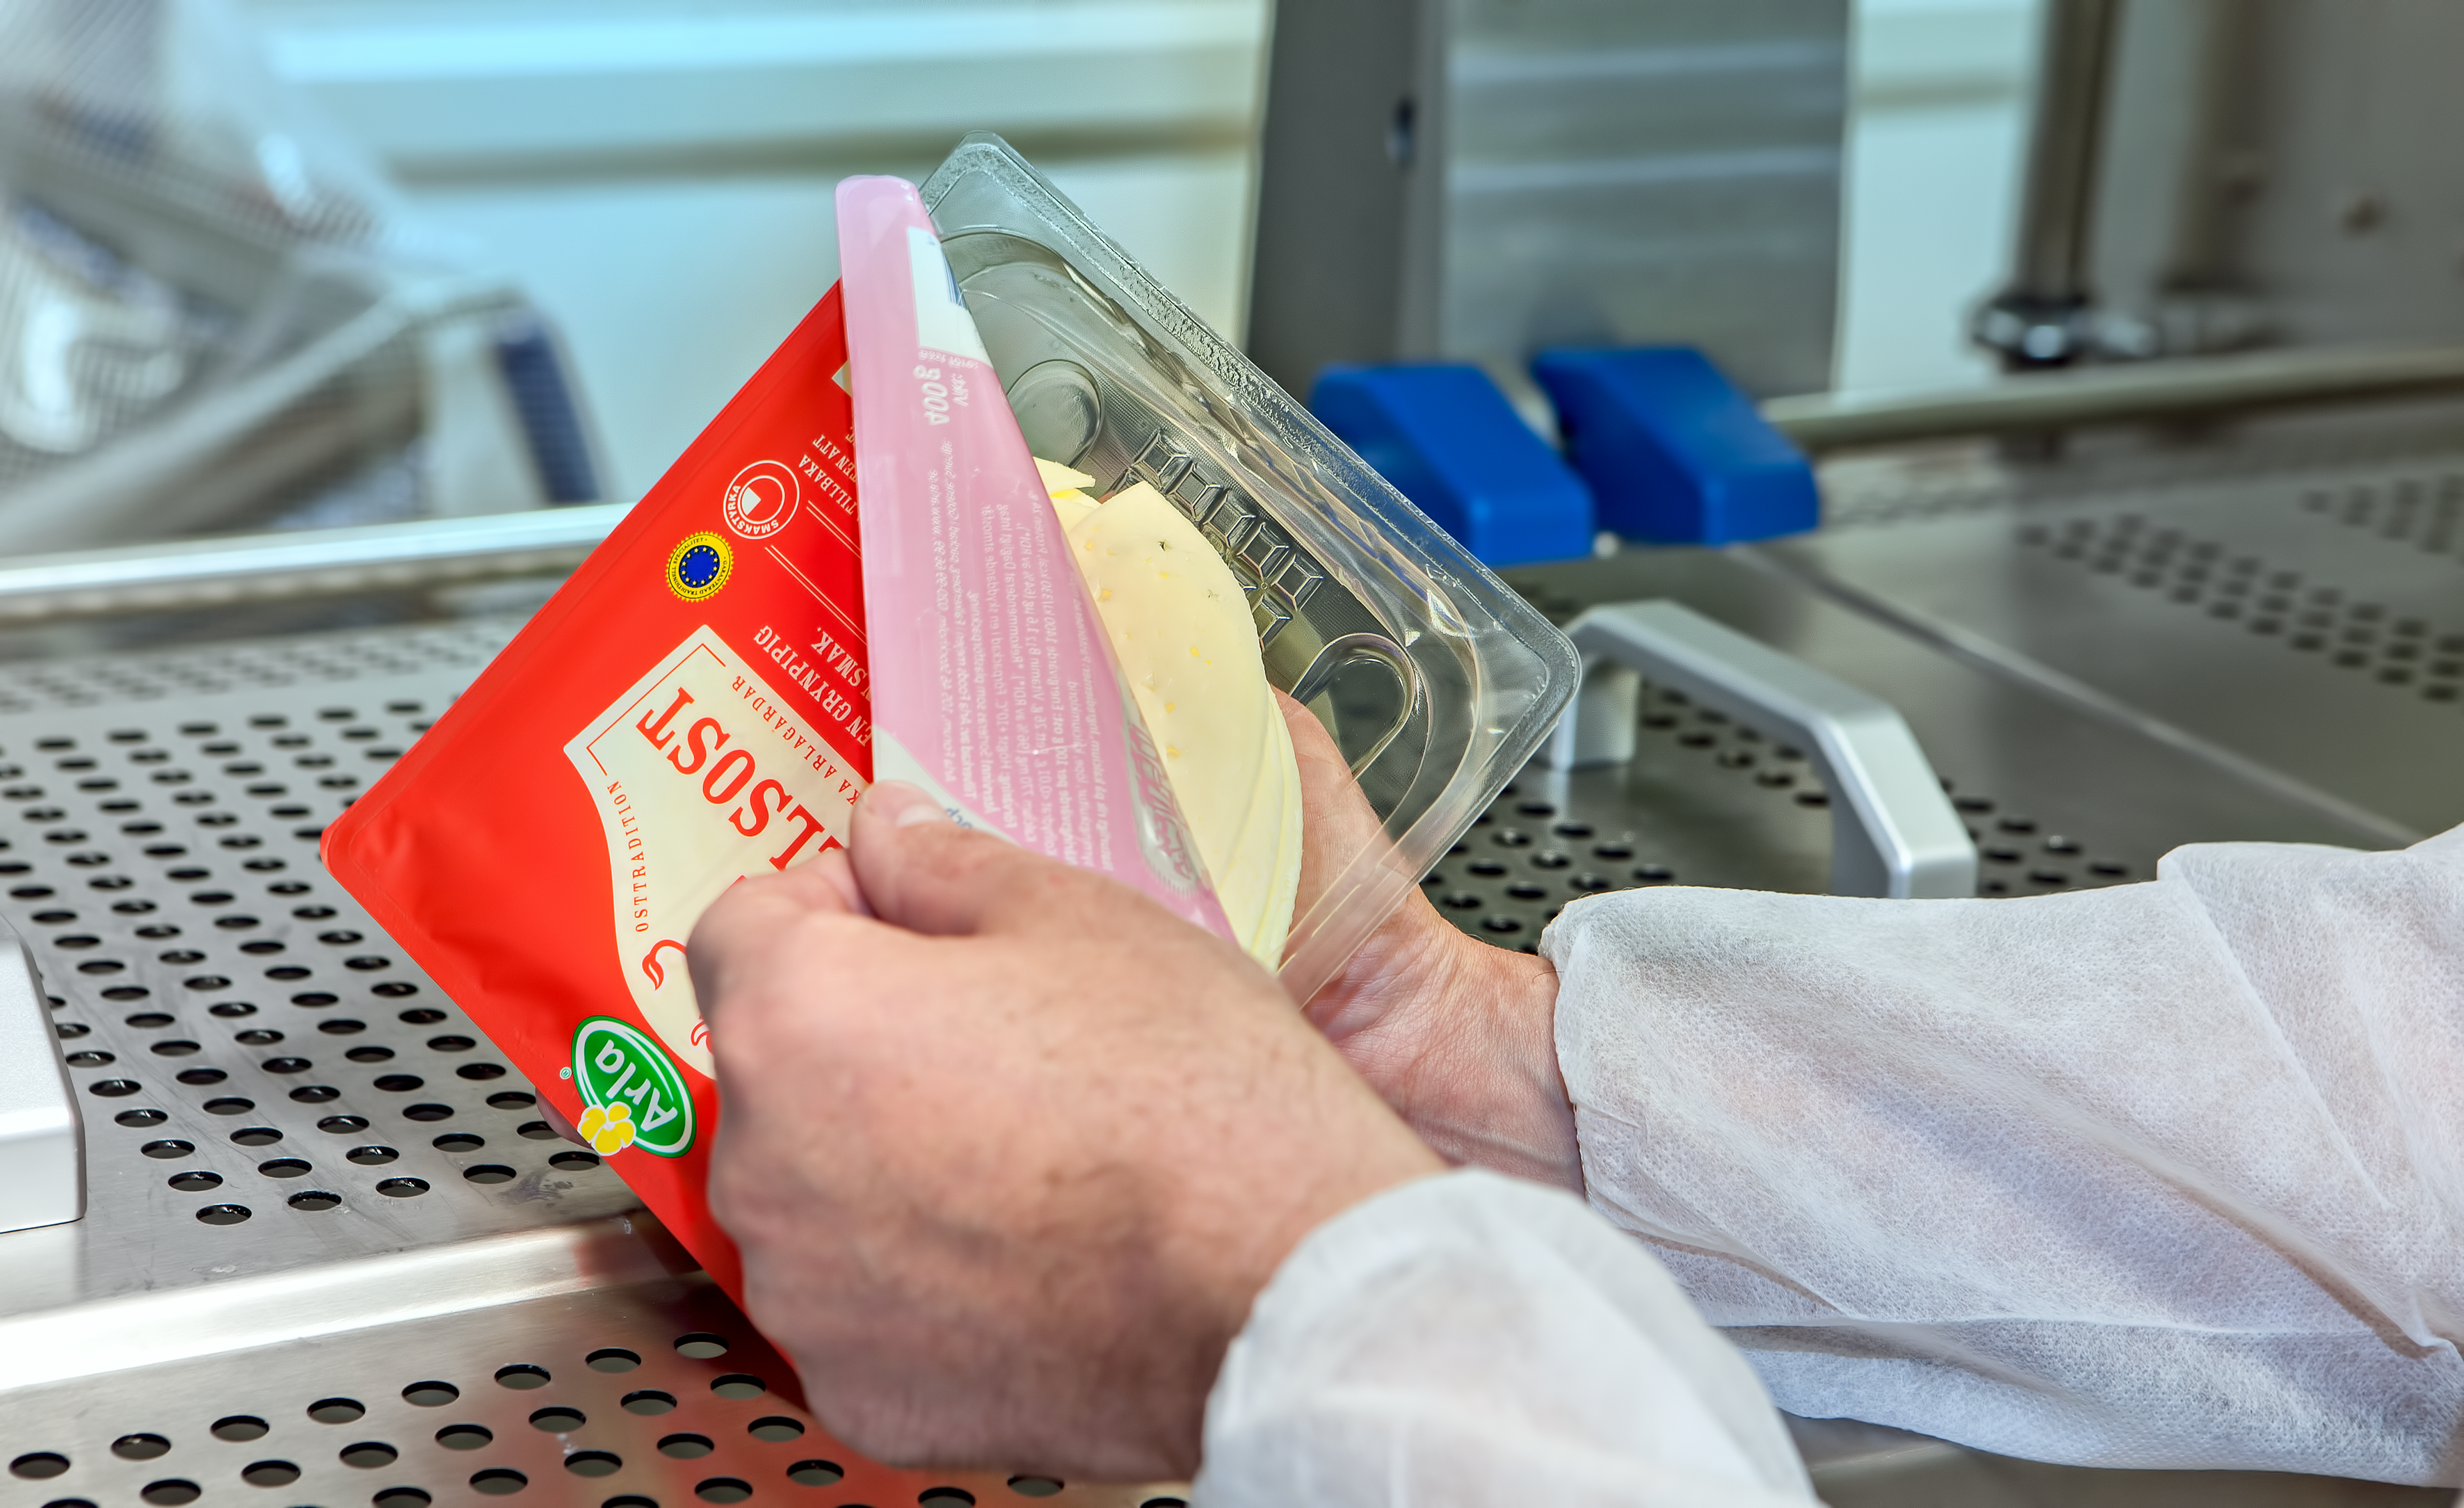 New Arla Foods packaging for sliced cheese